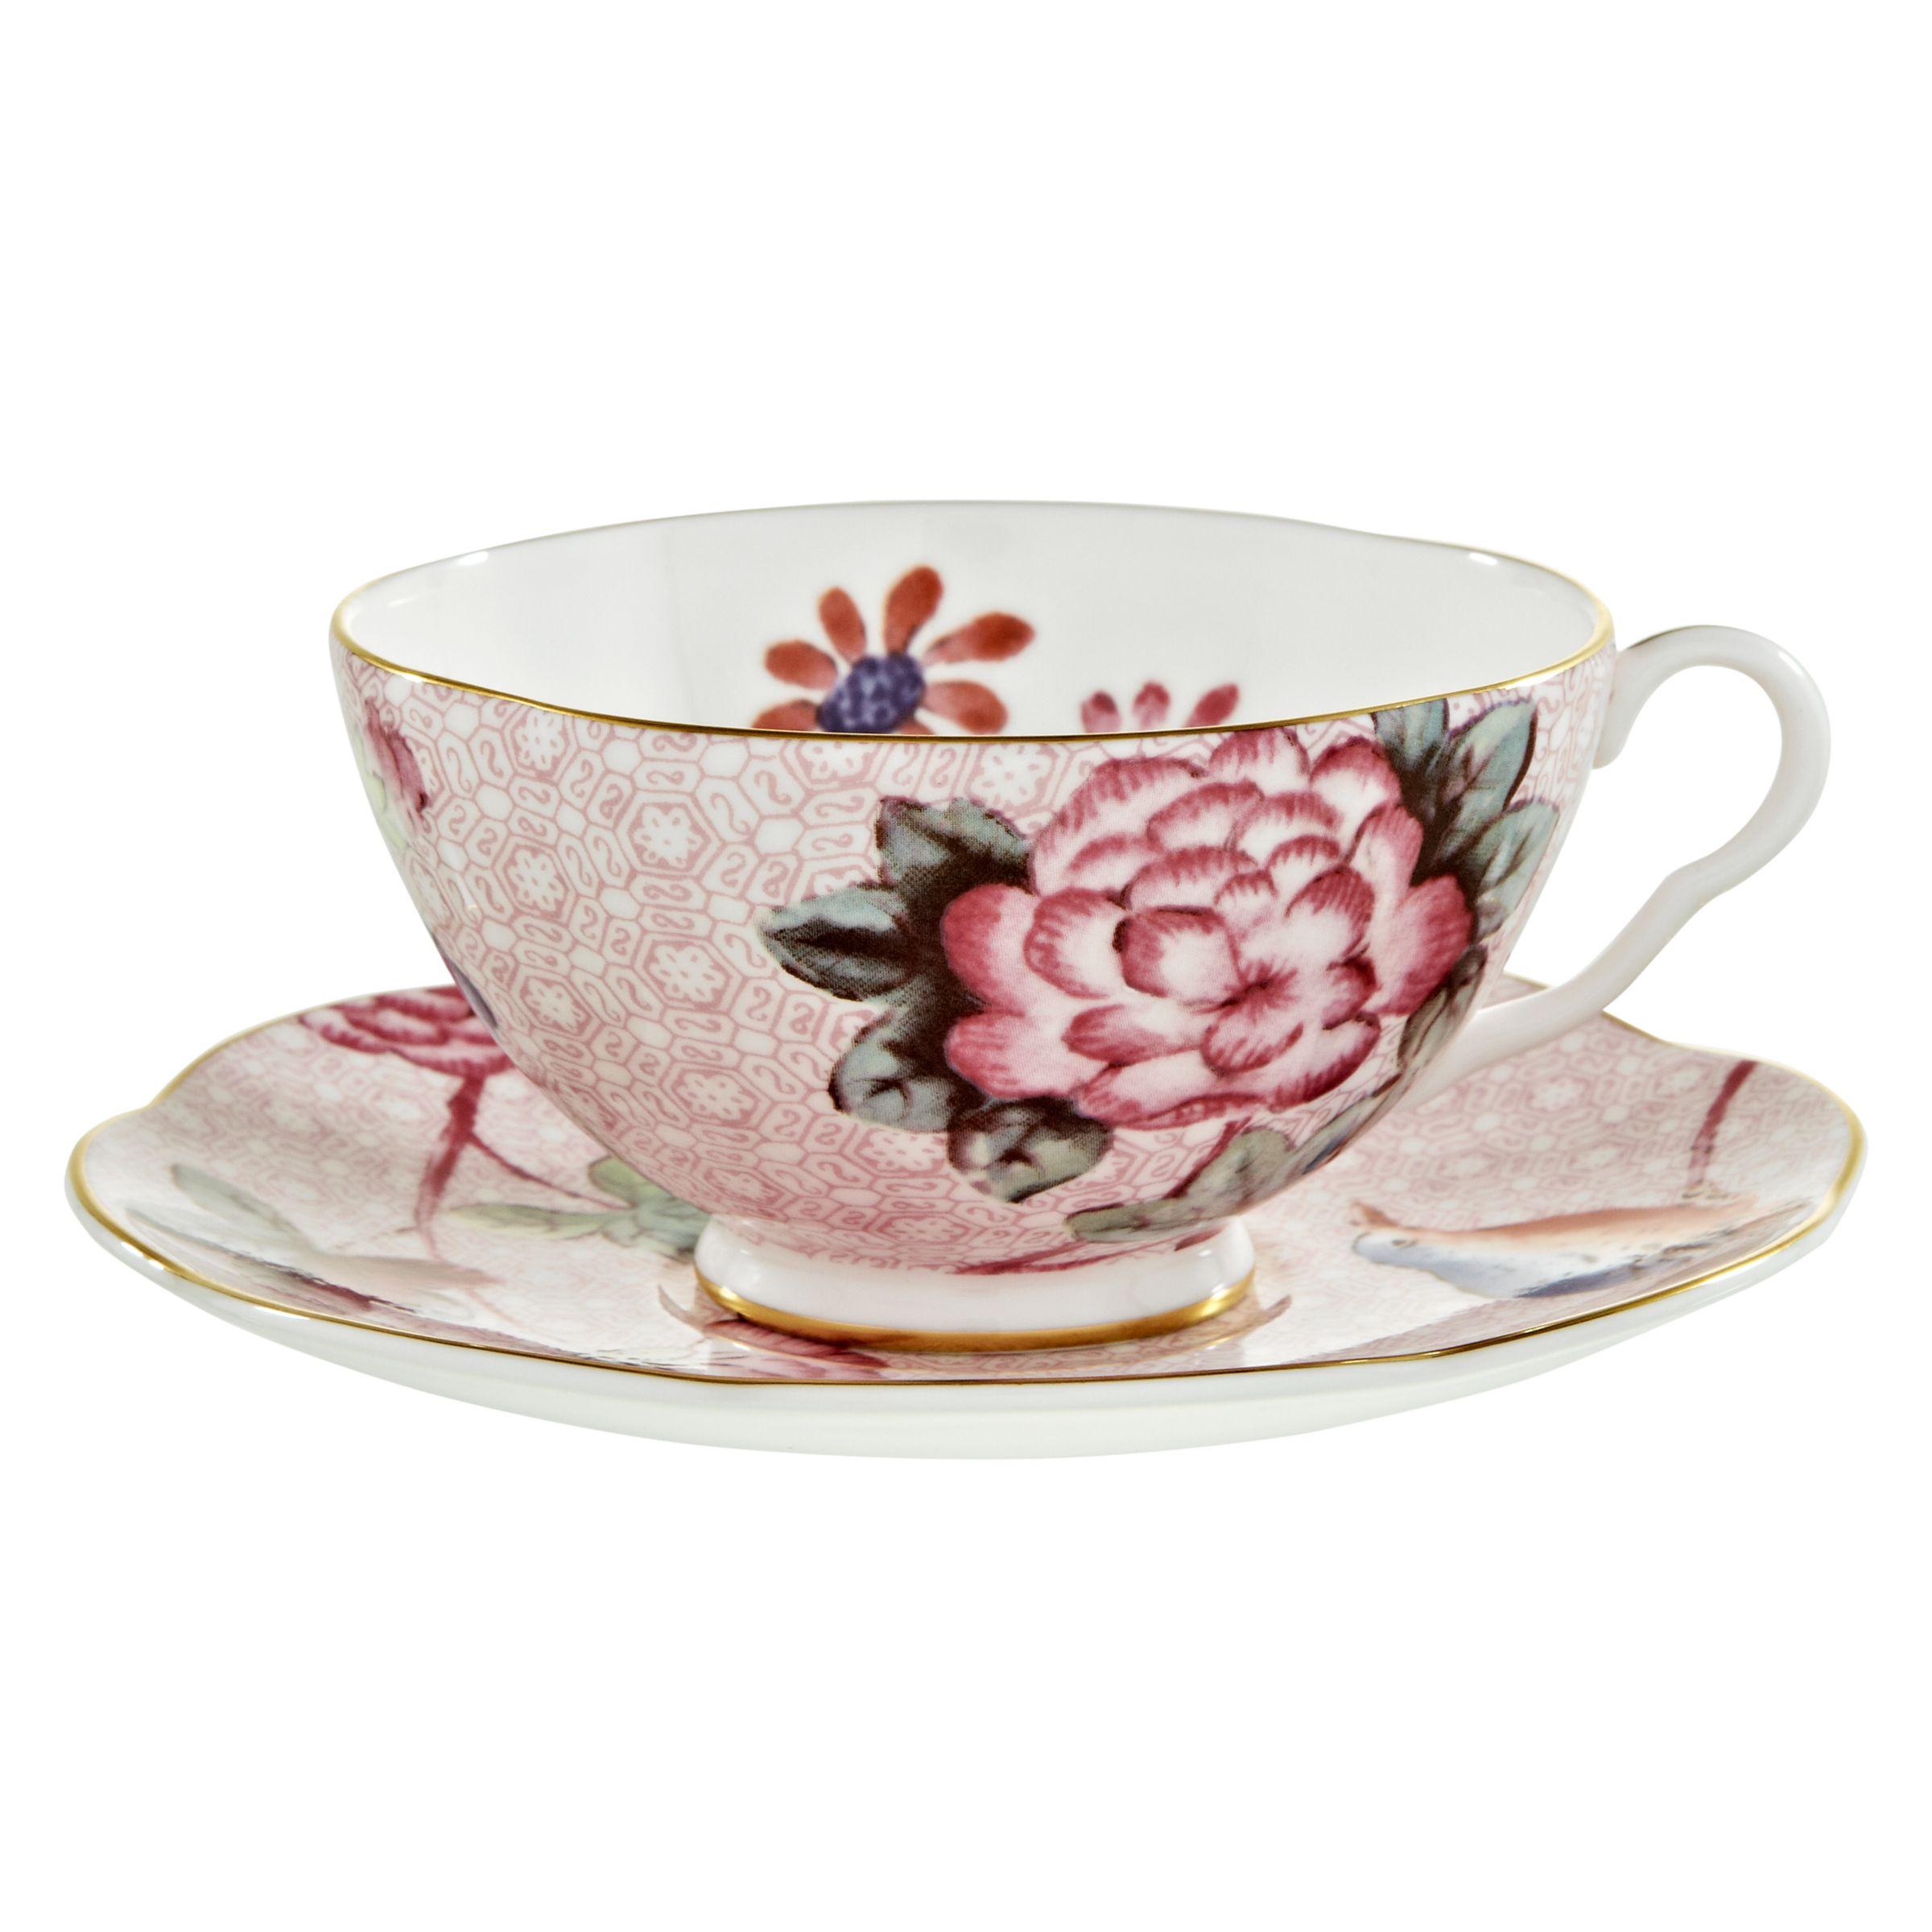 Wedgwood Baby Gifts Uk : Wedgwood cuckoo tea cup and saucer pink octer ?